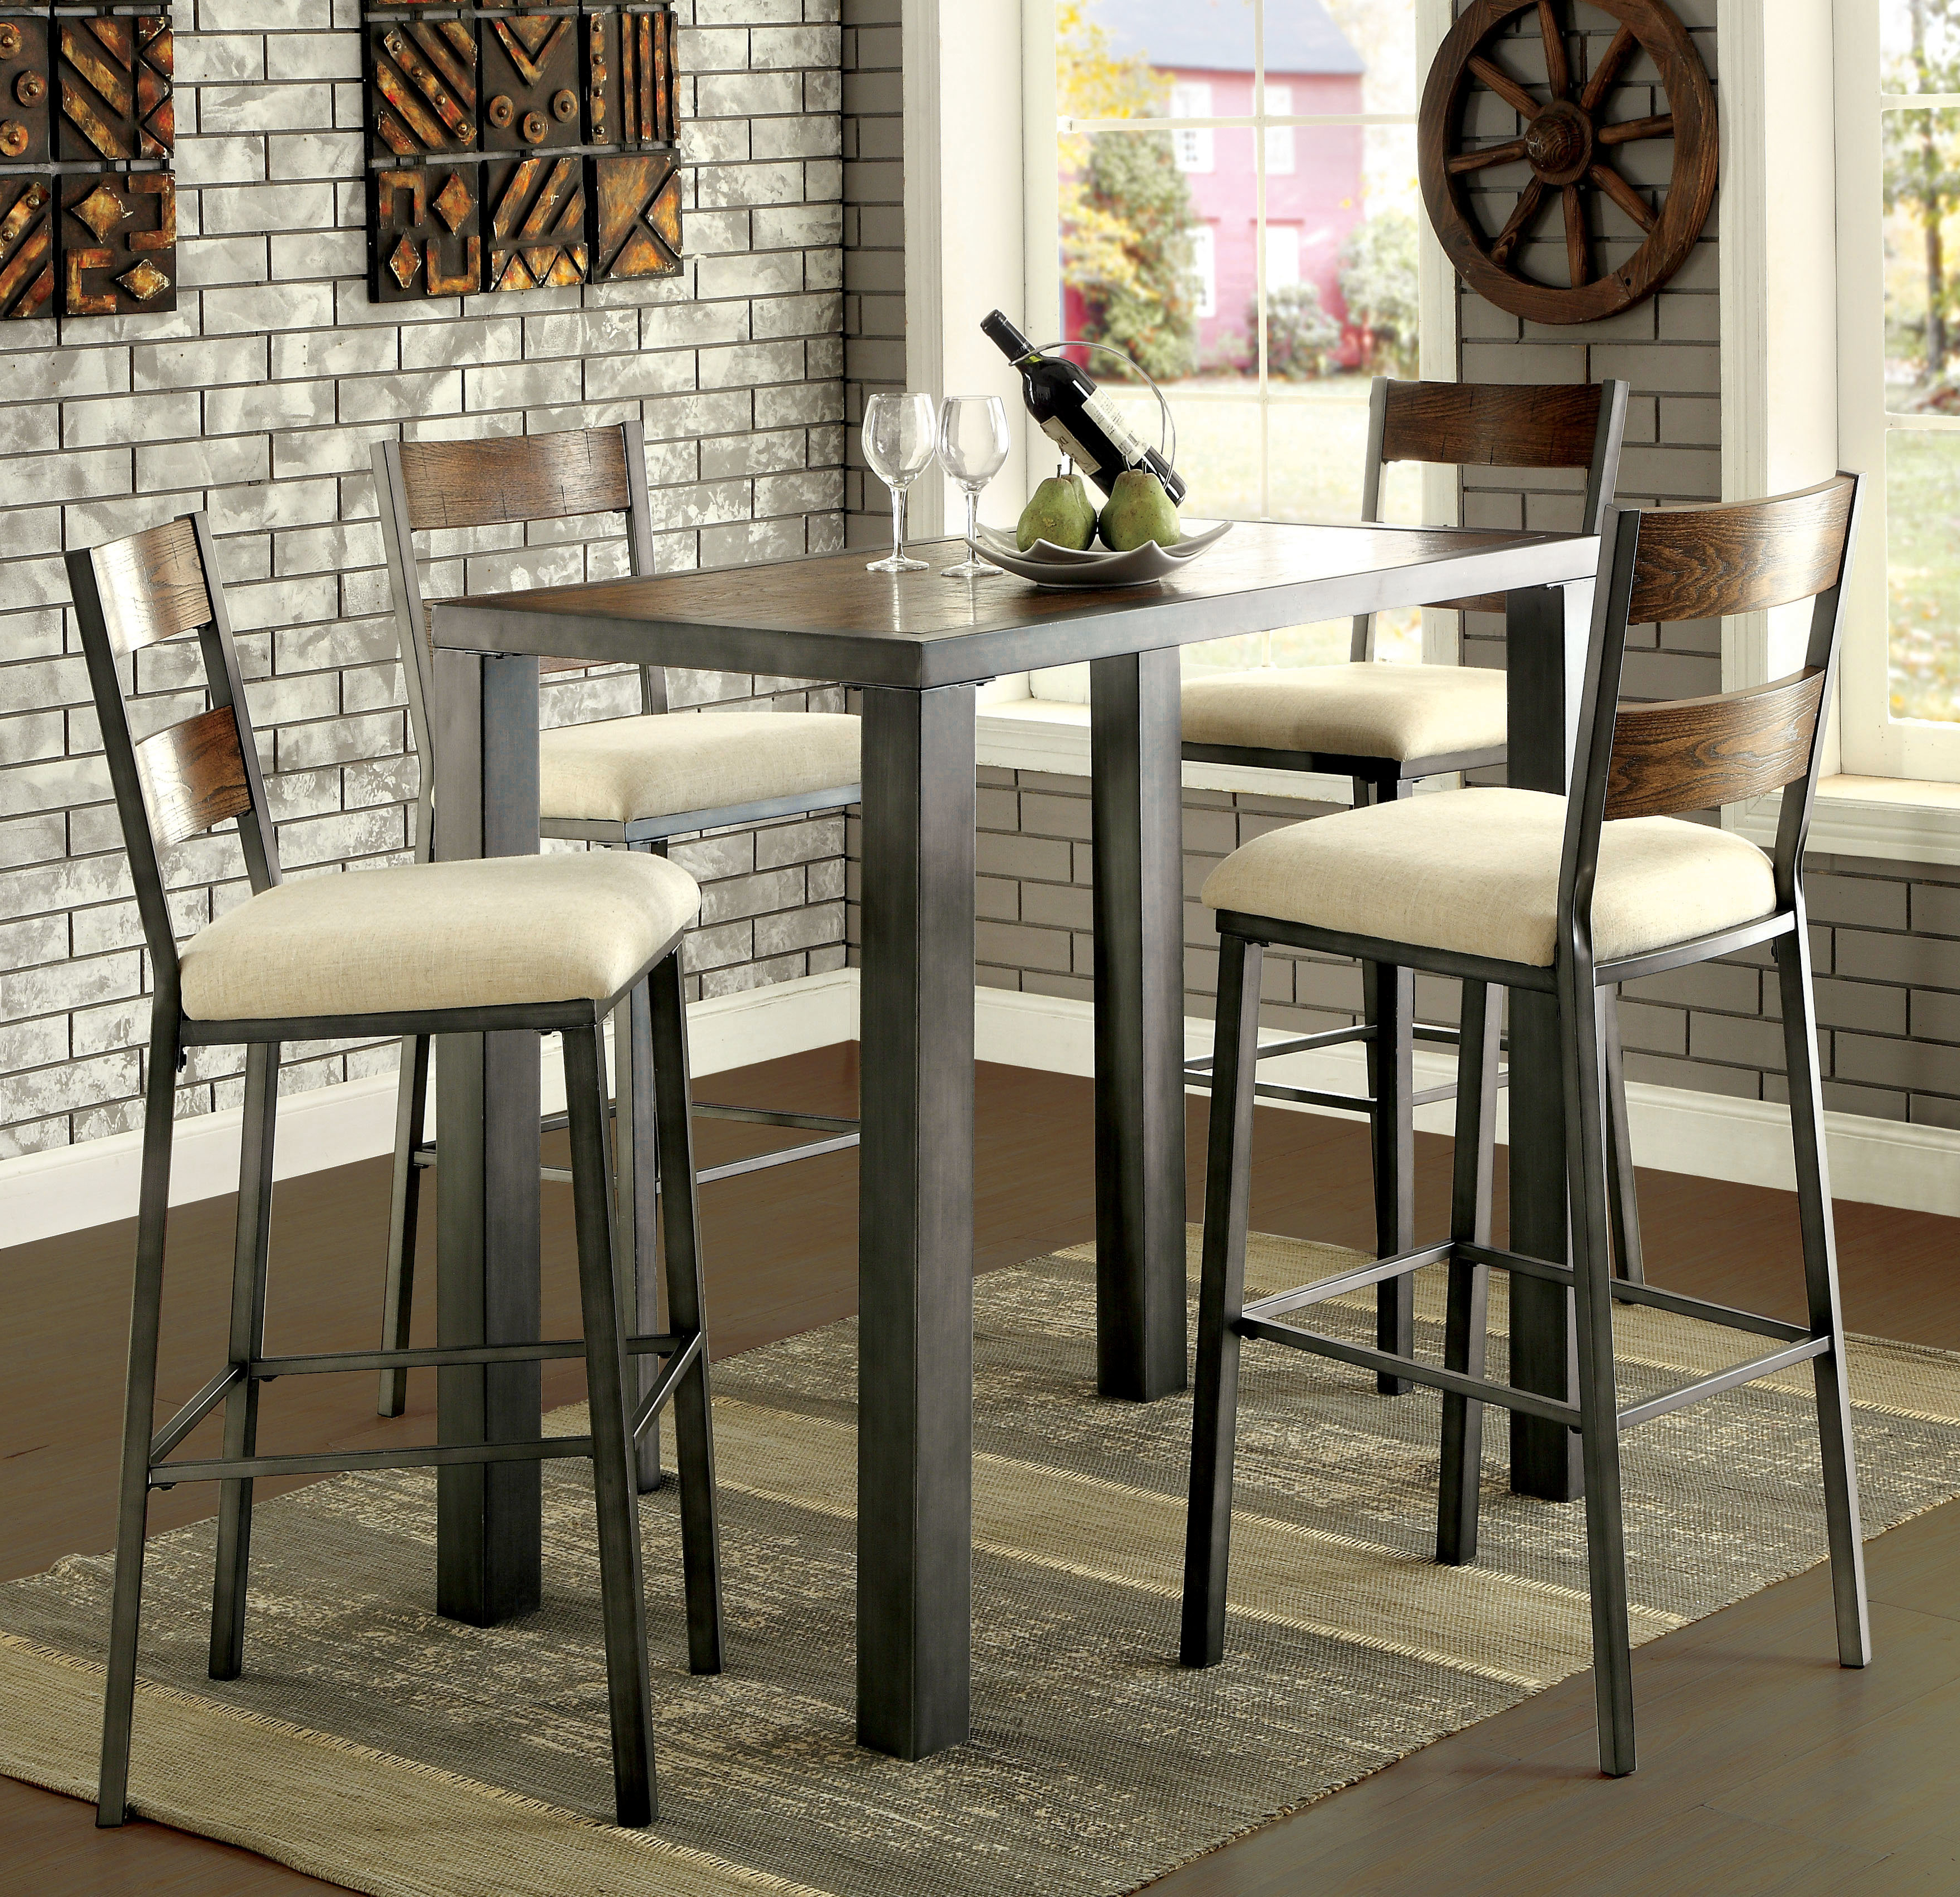 Thurman 5 Piece Pub Table Set Throughout 2017 Biggs 5 Piece Counter Height Solid Wood Dining Sets (Set Of 5) (View 17 of 20)